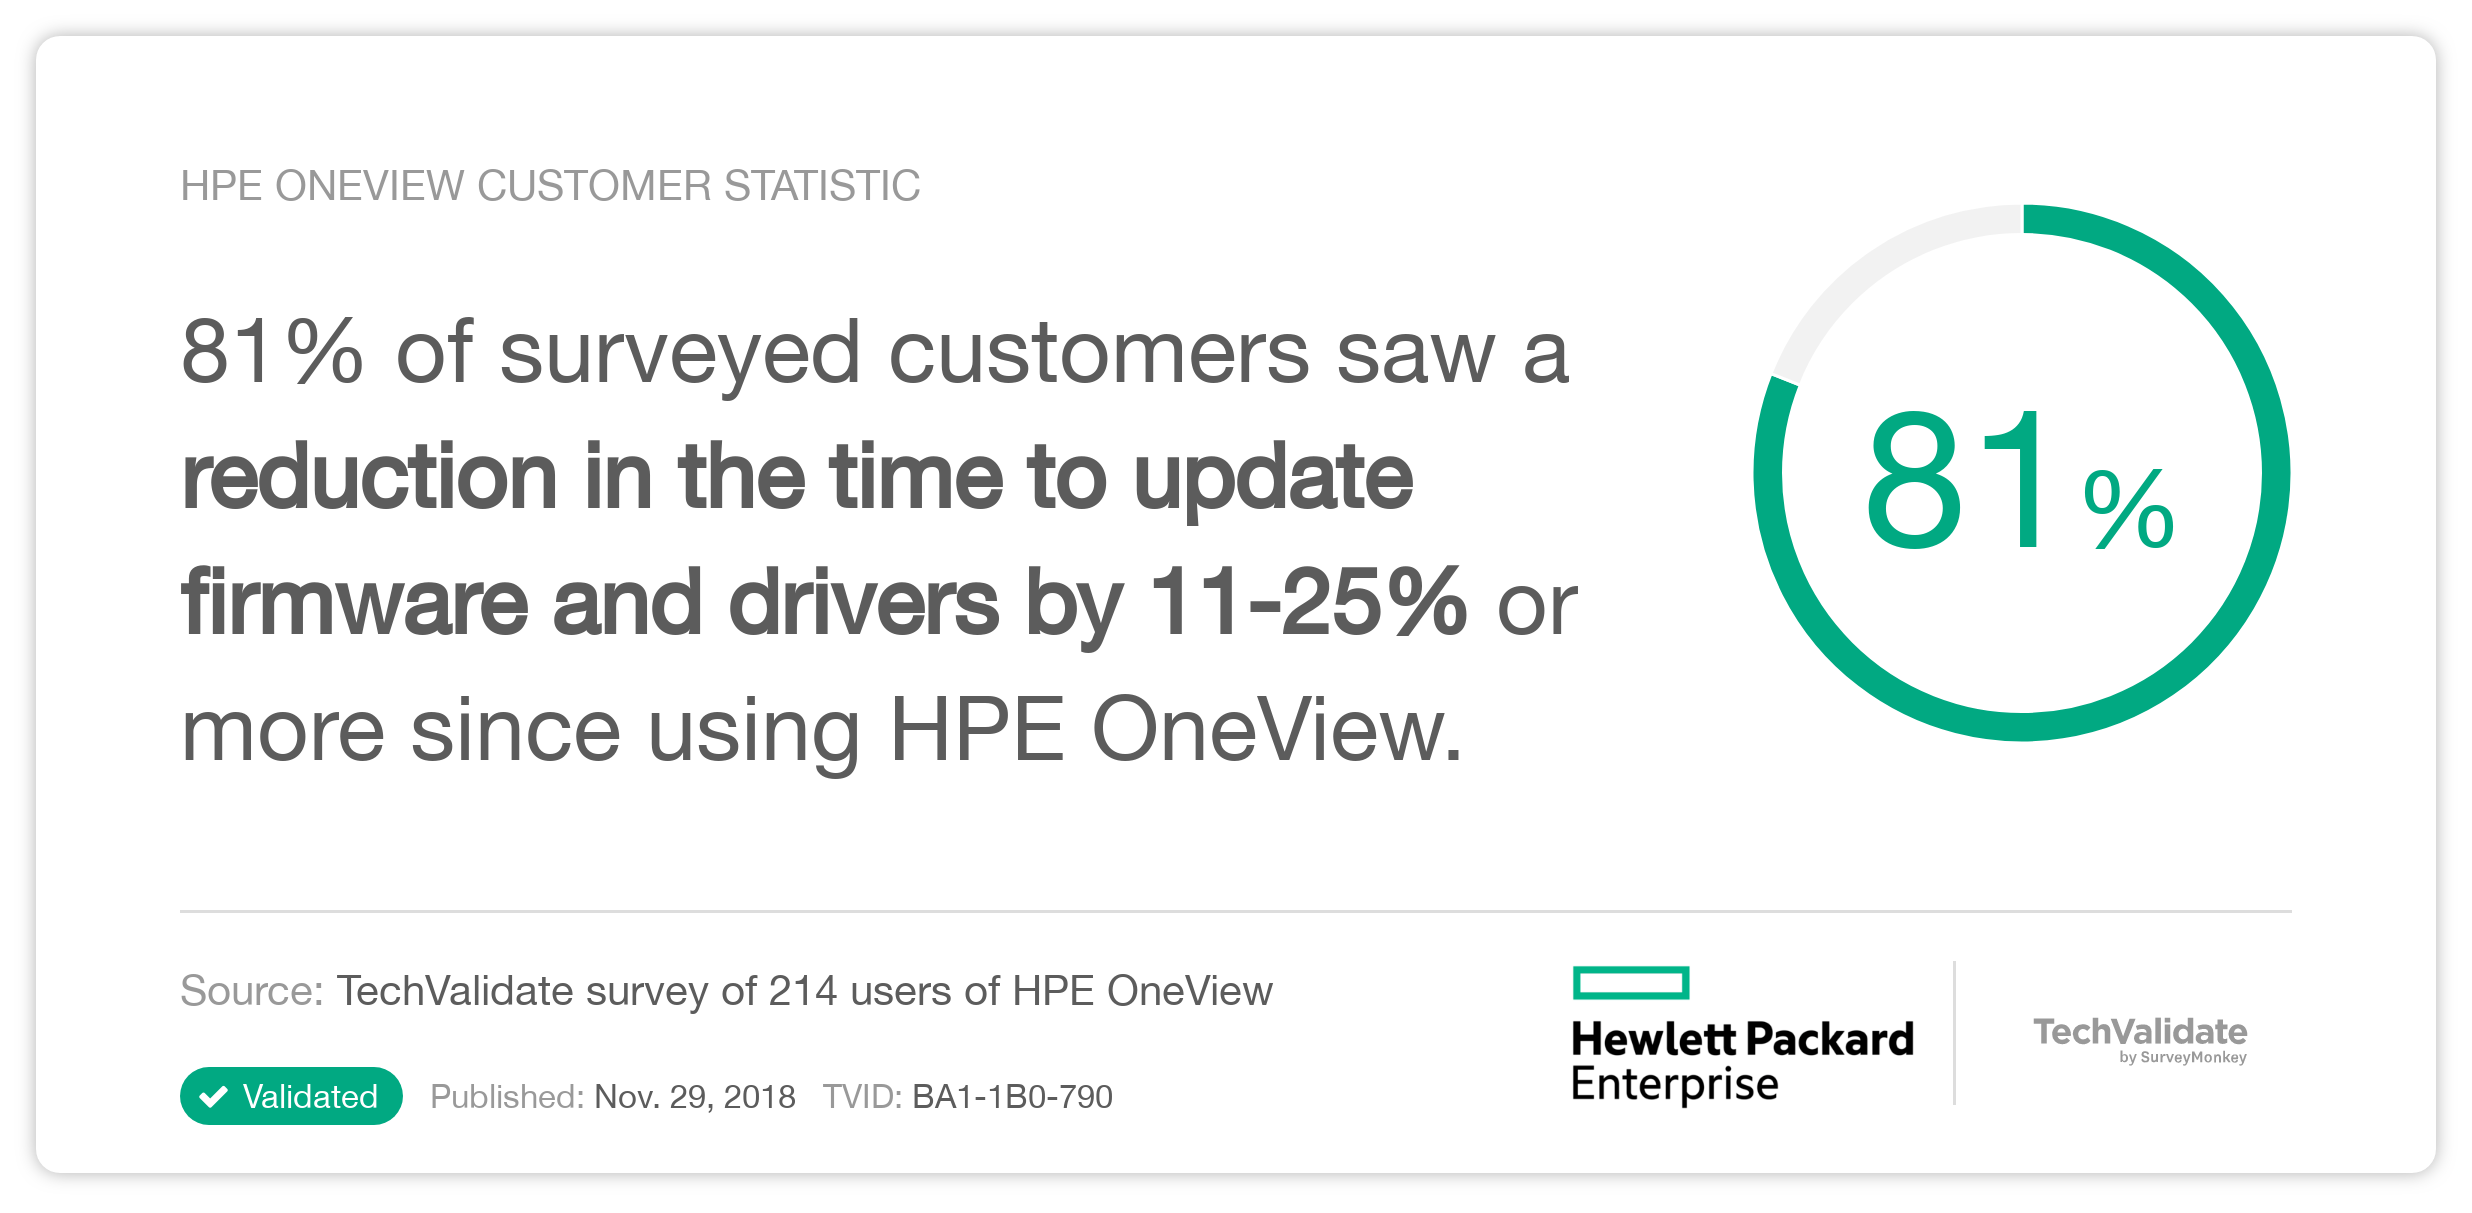 HPE OneView Customer Statistic